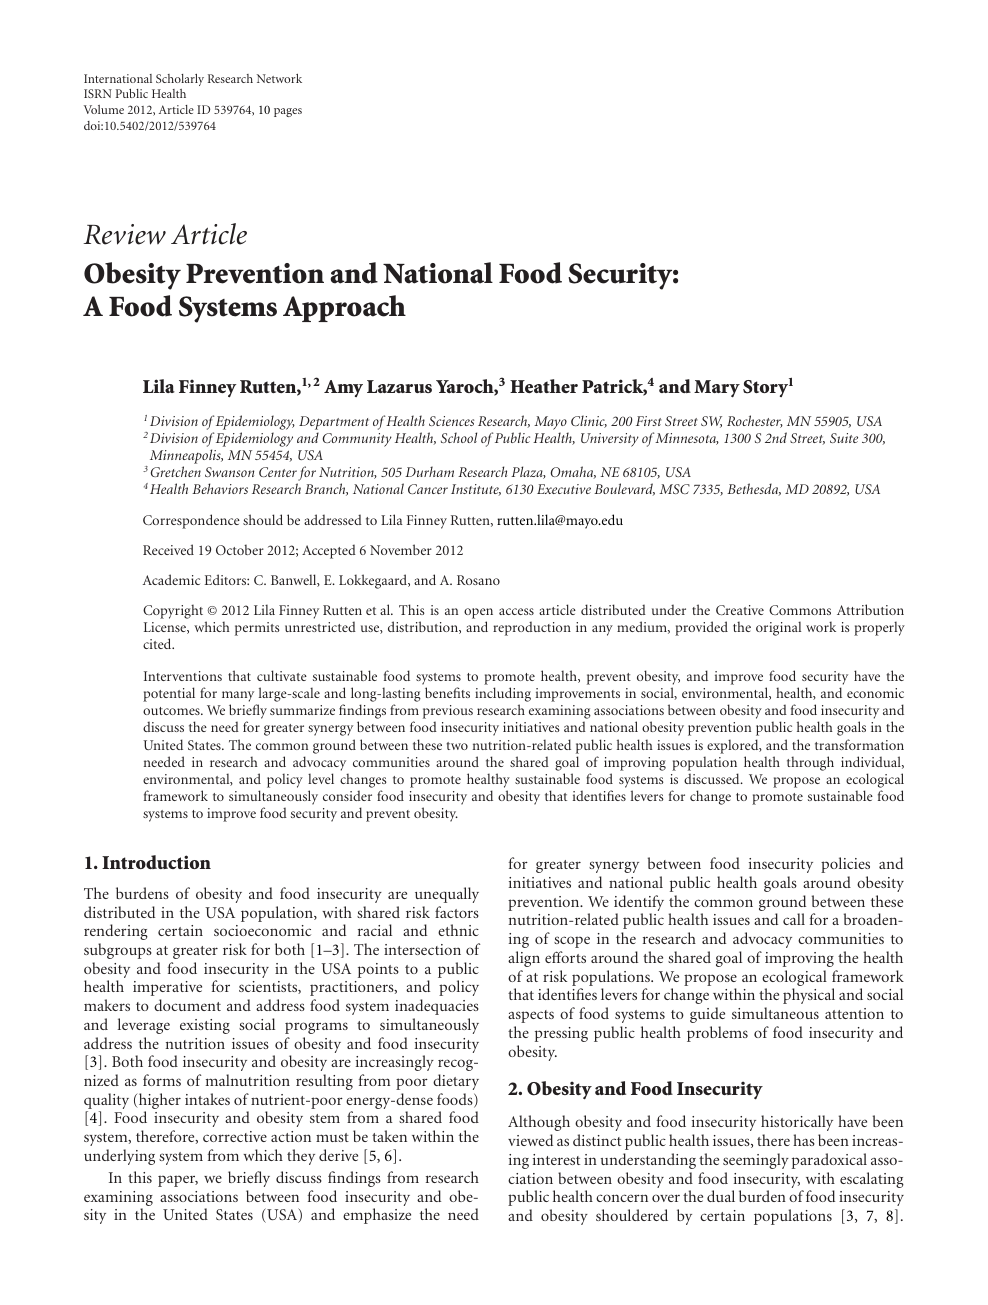 Obesity Prevention and National Food Security: A Food Systems